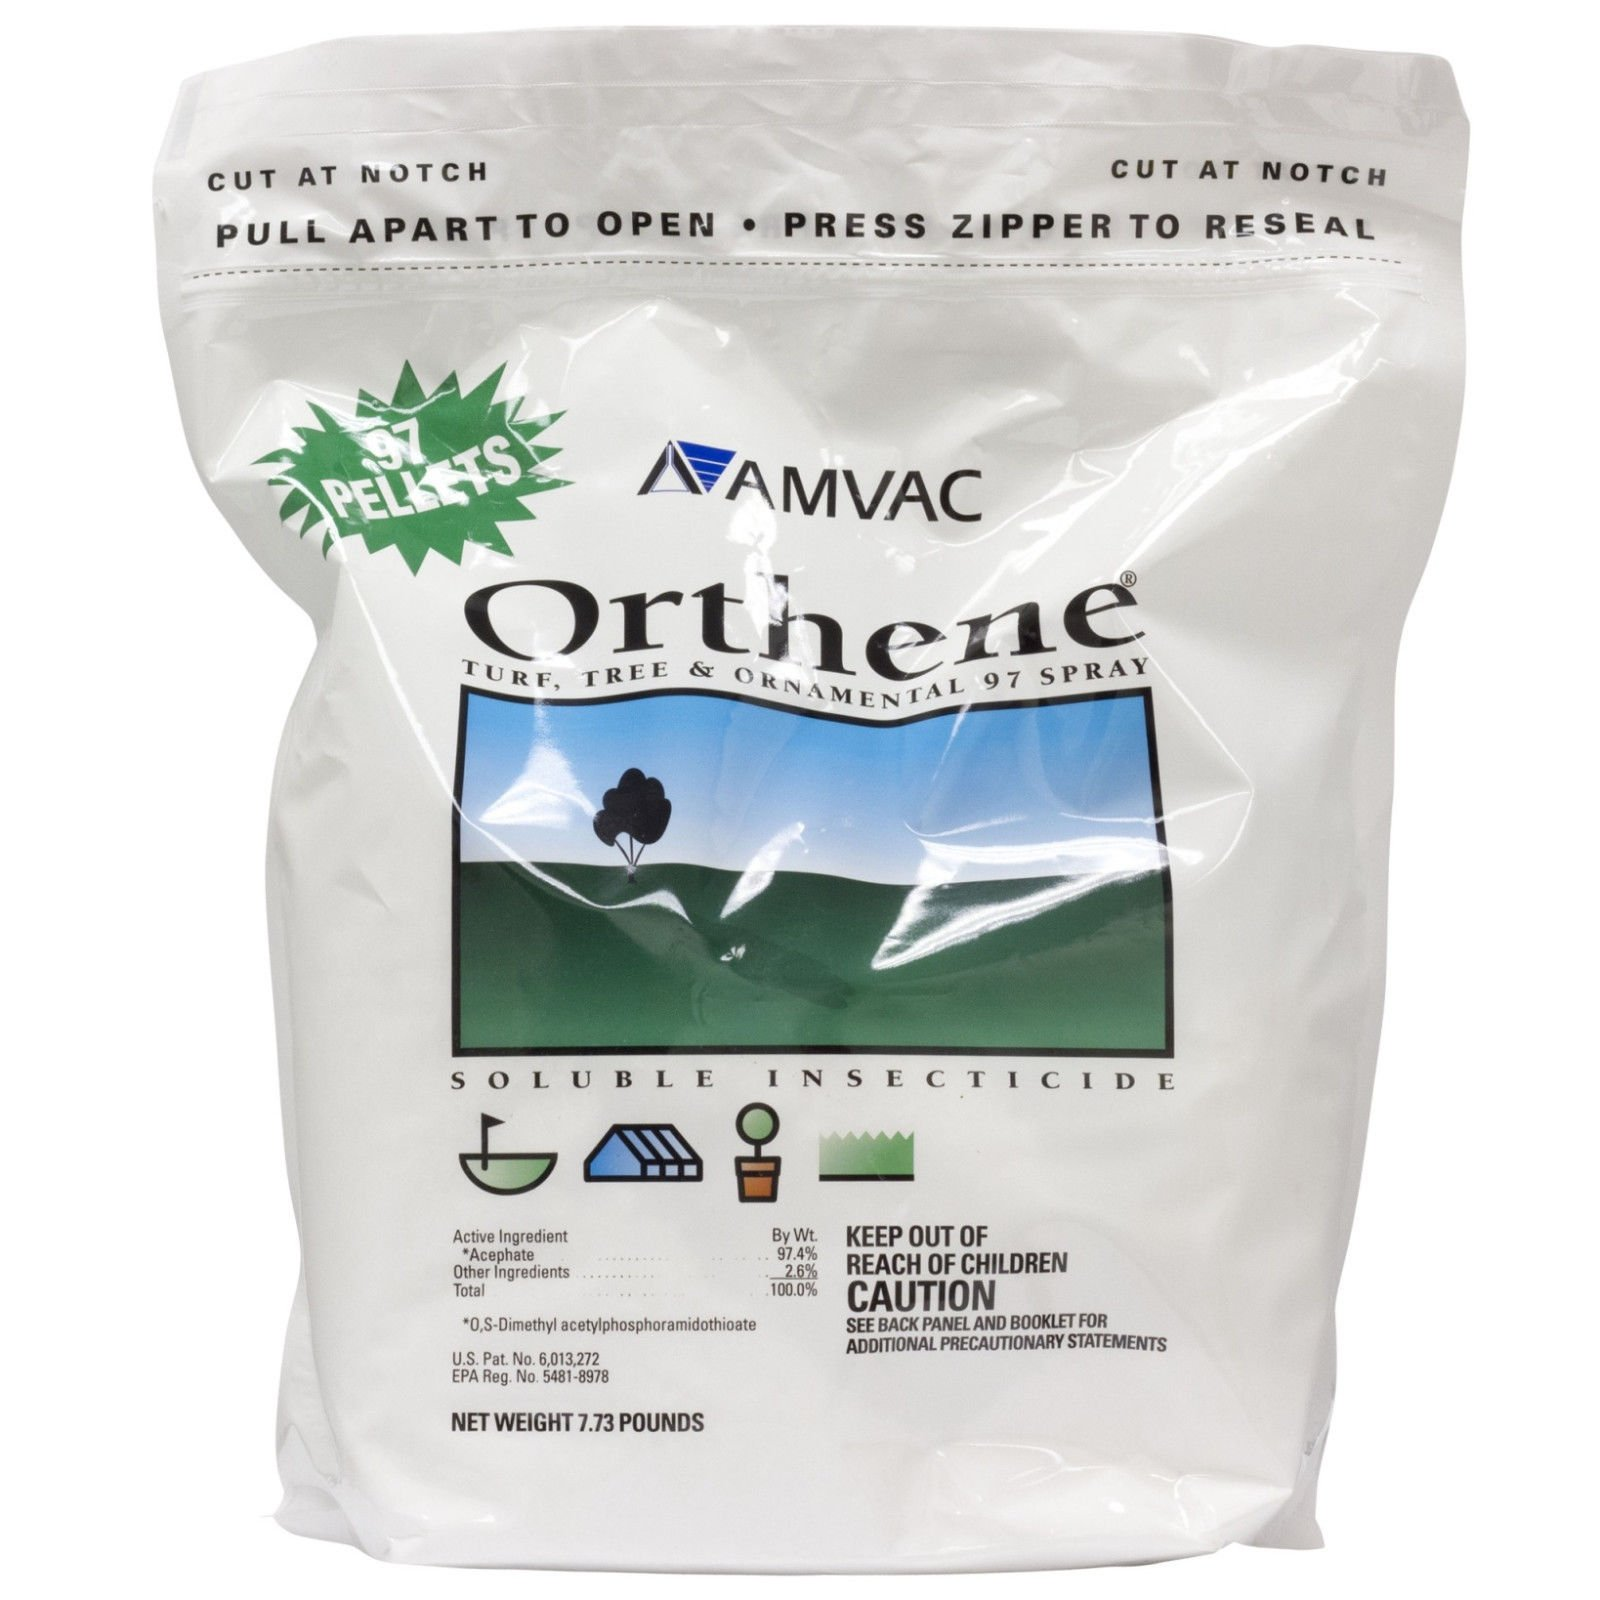 Orthene 97 Spray Insecticide 7.73 Lbs For Pests On Trees Ornamentals And Turf''